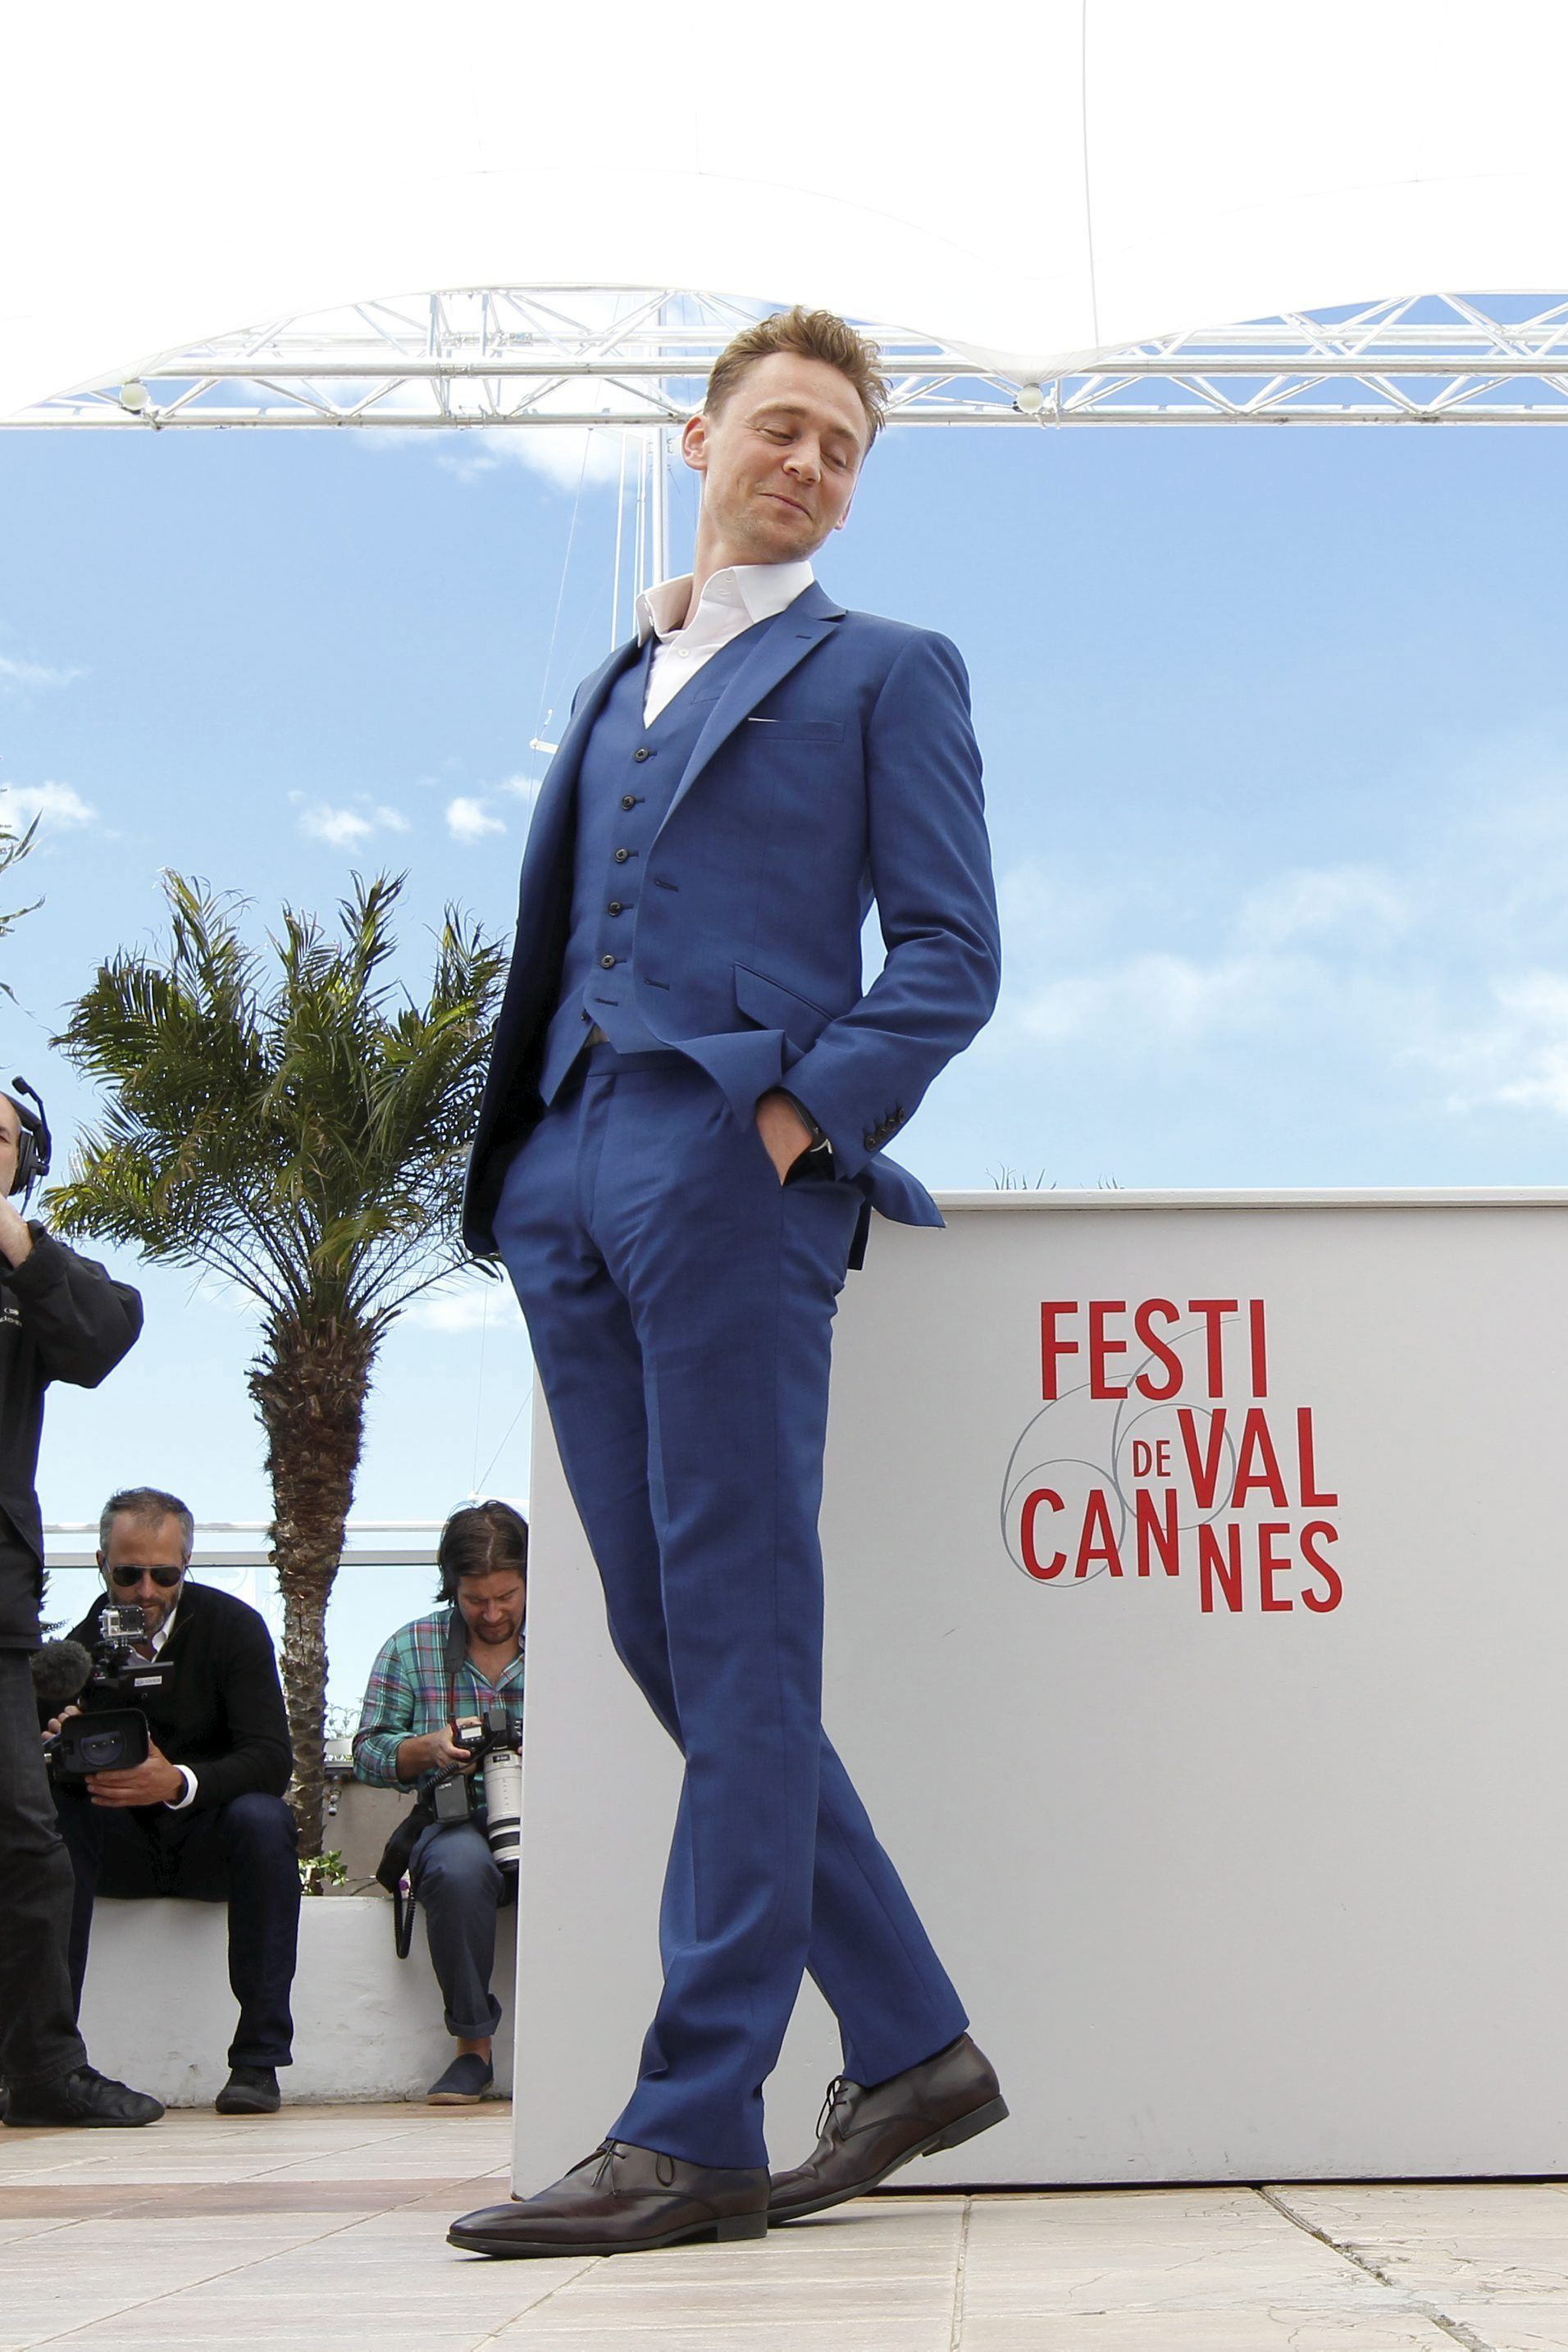 Tom Hiddleston attends the photocall for 'Only Lovers Left Alive' at the 66th Annual Cannes Film Festival at the Palais des Festivals on May 25, 2013 in Cannes, France [HQ]